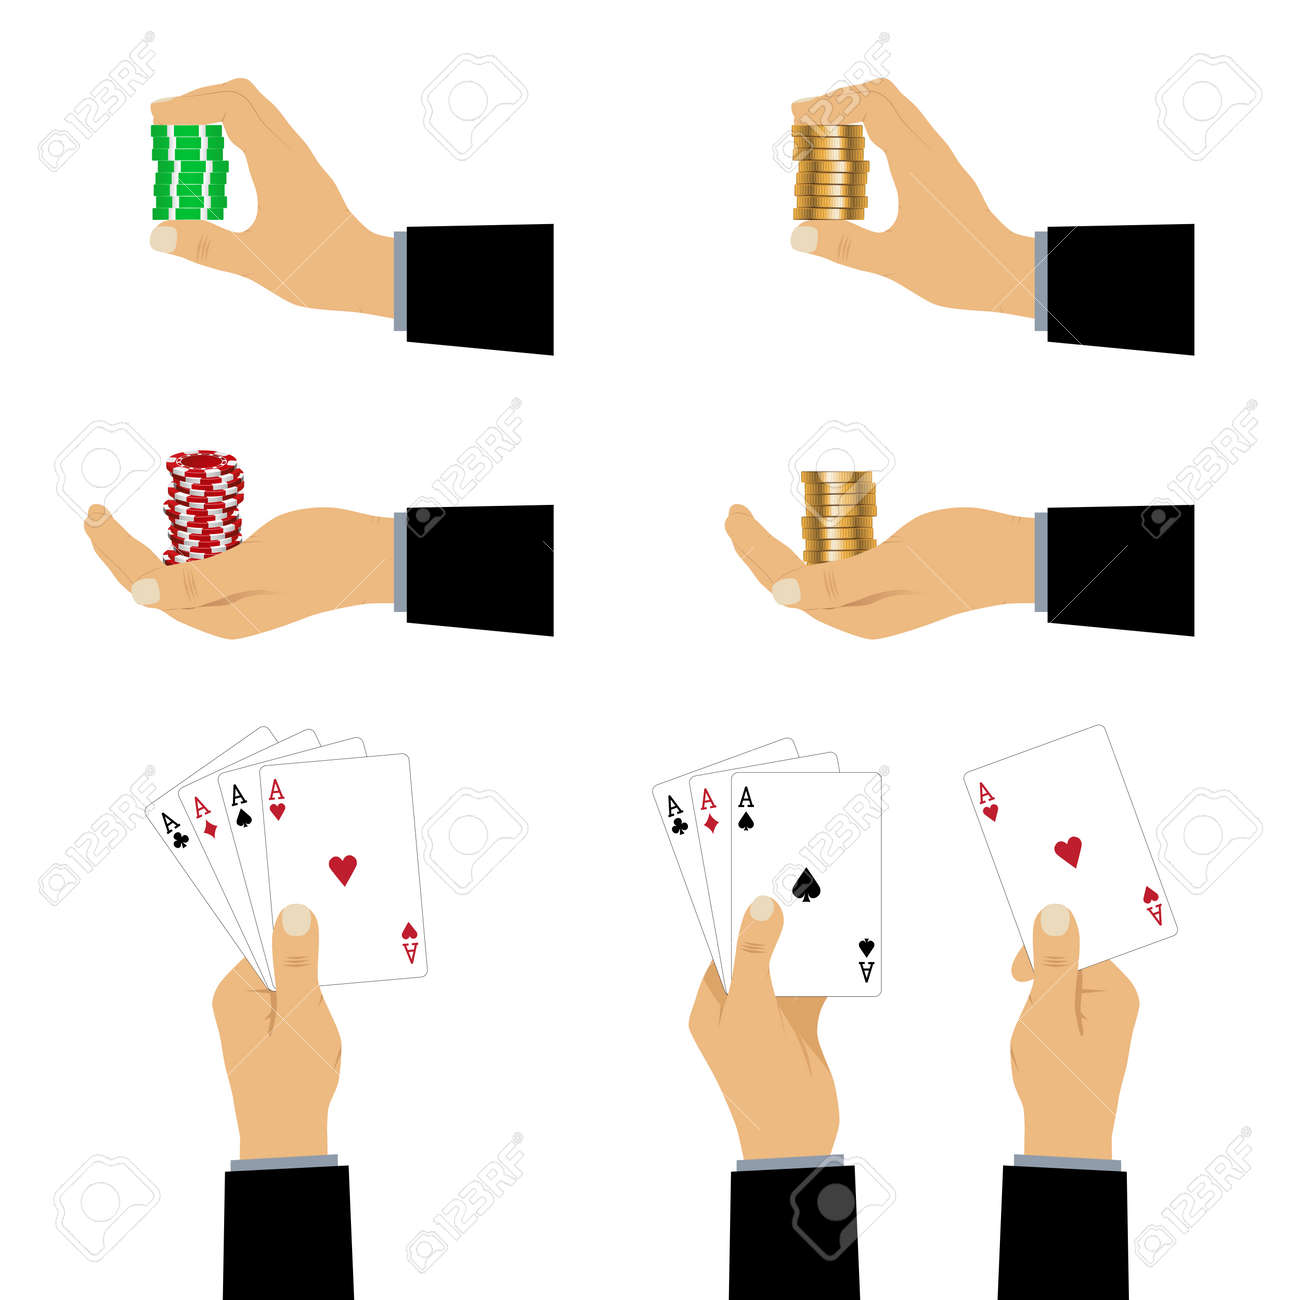 Hand with playing cards and chips. Playing cards and casino chips. - 52404343